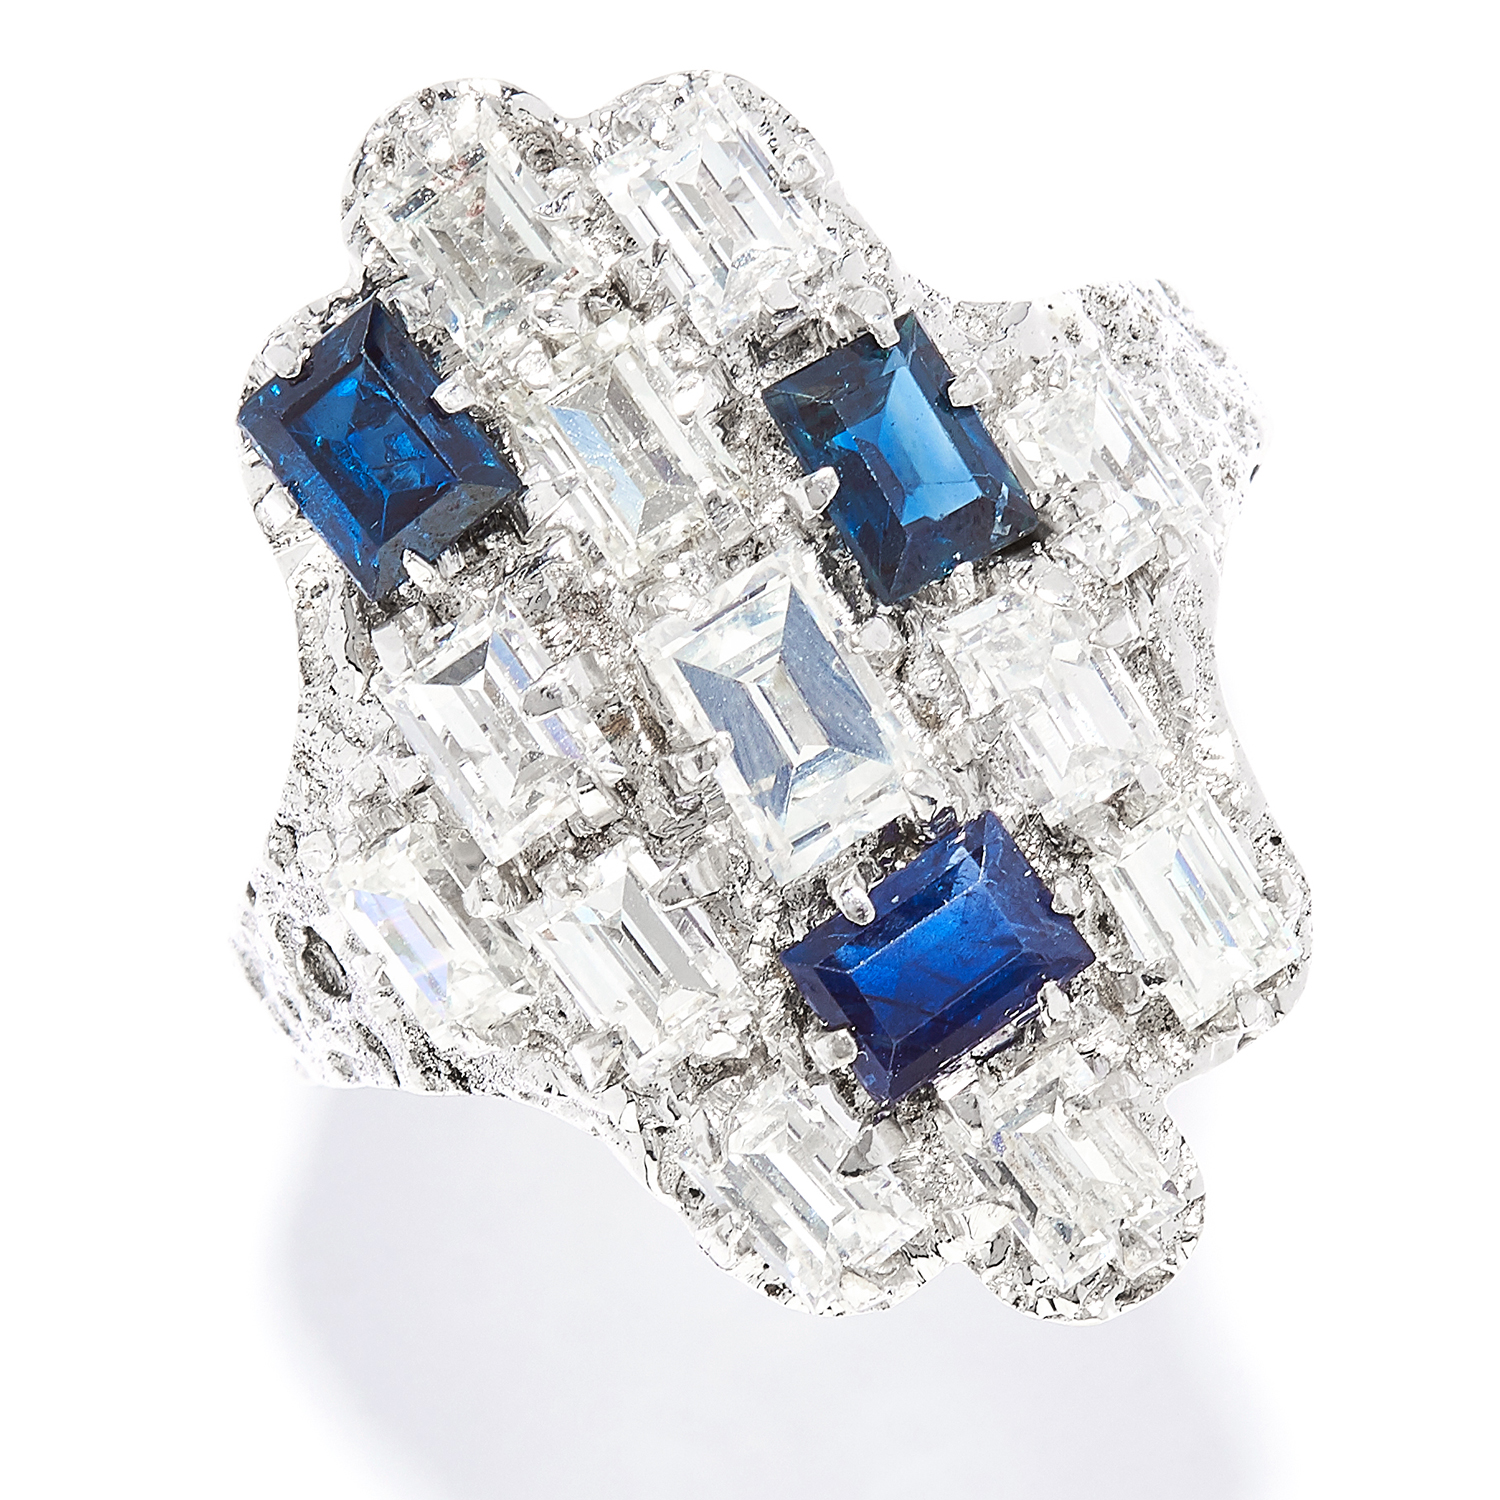 SAPPHIRE AND DIAMOND DRESS RING, CHARLES DE TEMPLE, CIRCA 1960 in 18ct white gold, in abstract